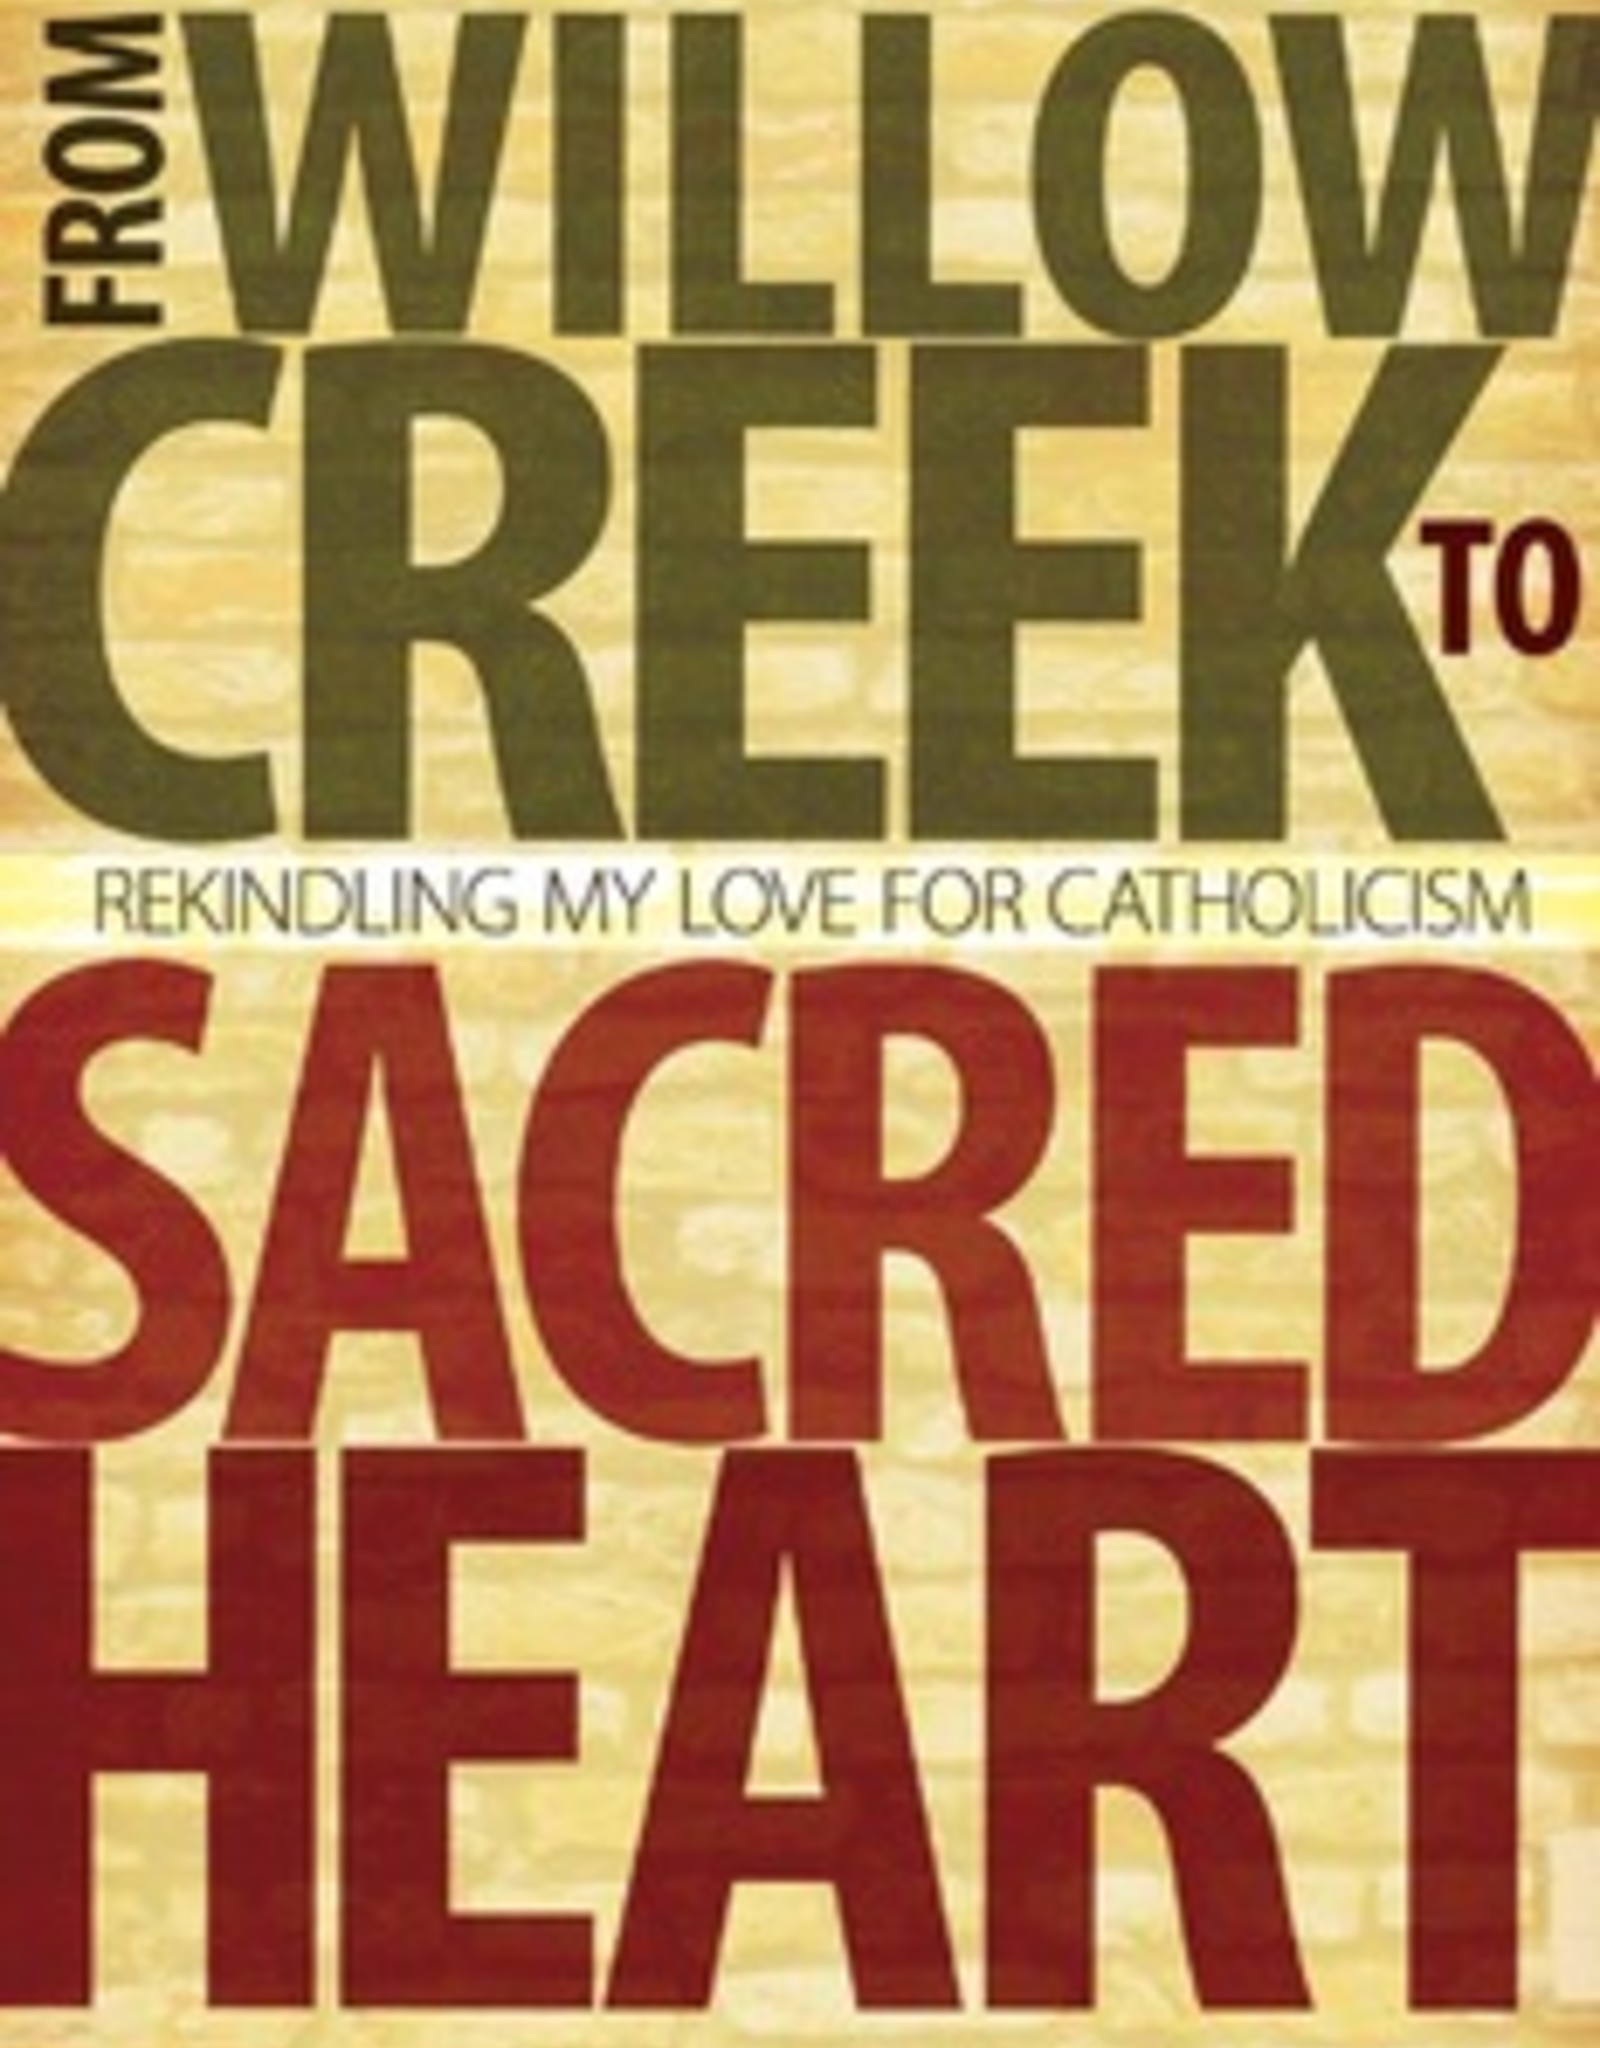 Ave Maria Press From Willow Creek to Sacred Heart:  Rekindling My Love for Catholicism, by Chris Haw (paperback)